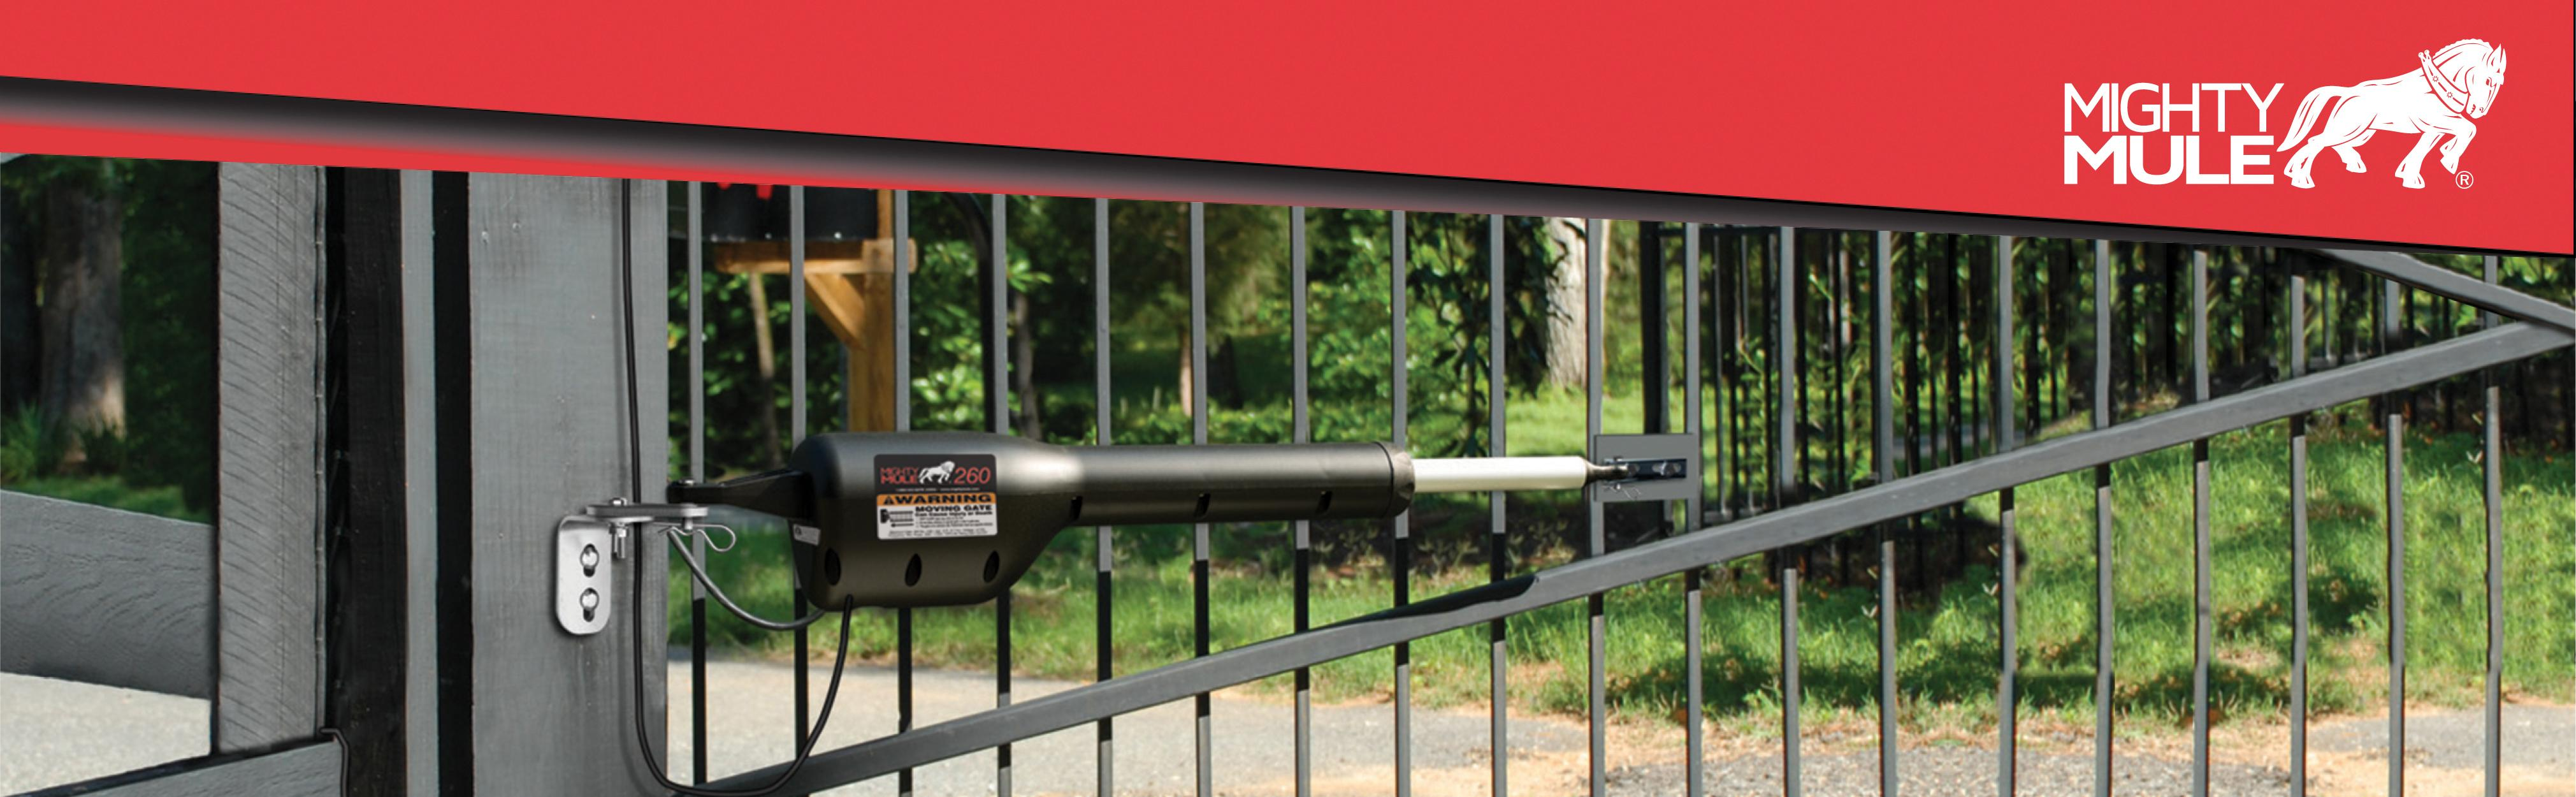 Mighty Mule Mm260 Automatic Gate Opener For Light Duty